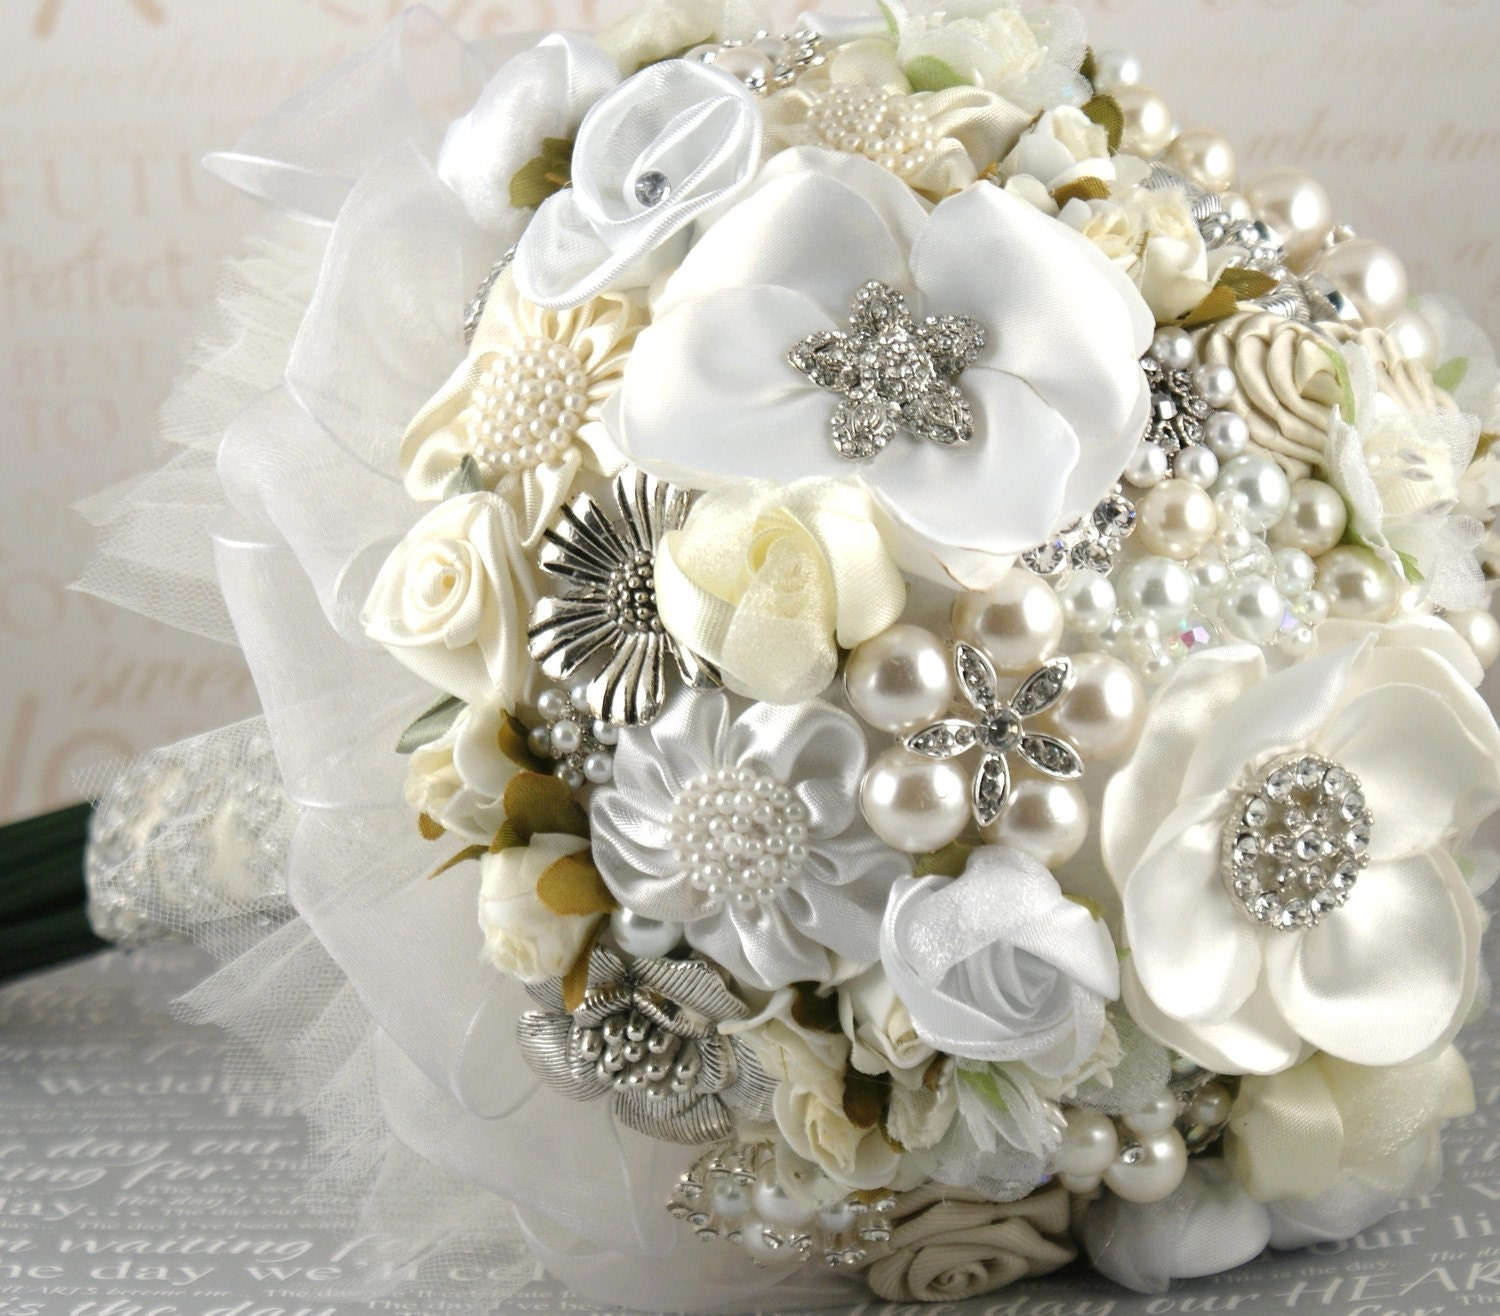 Brooch bouquet for wedding...which to choose? Or go back to fresh flowers? :  wedding Il 570xN.228928968.jpg